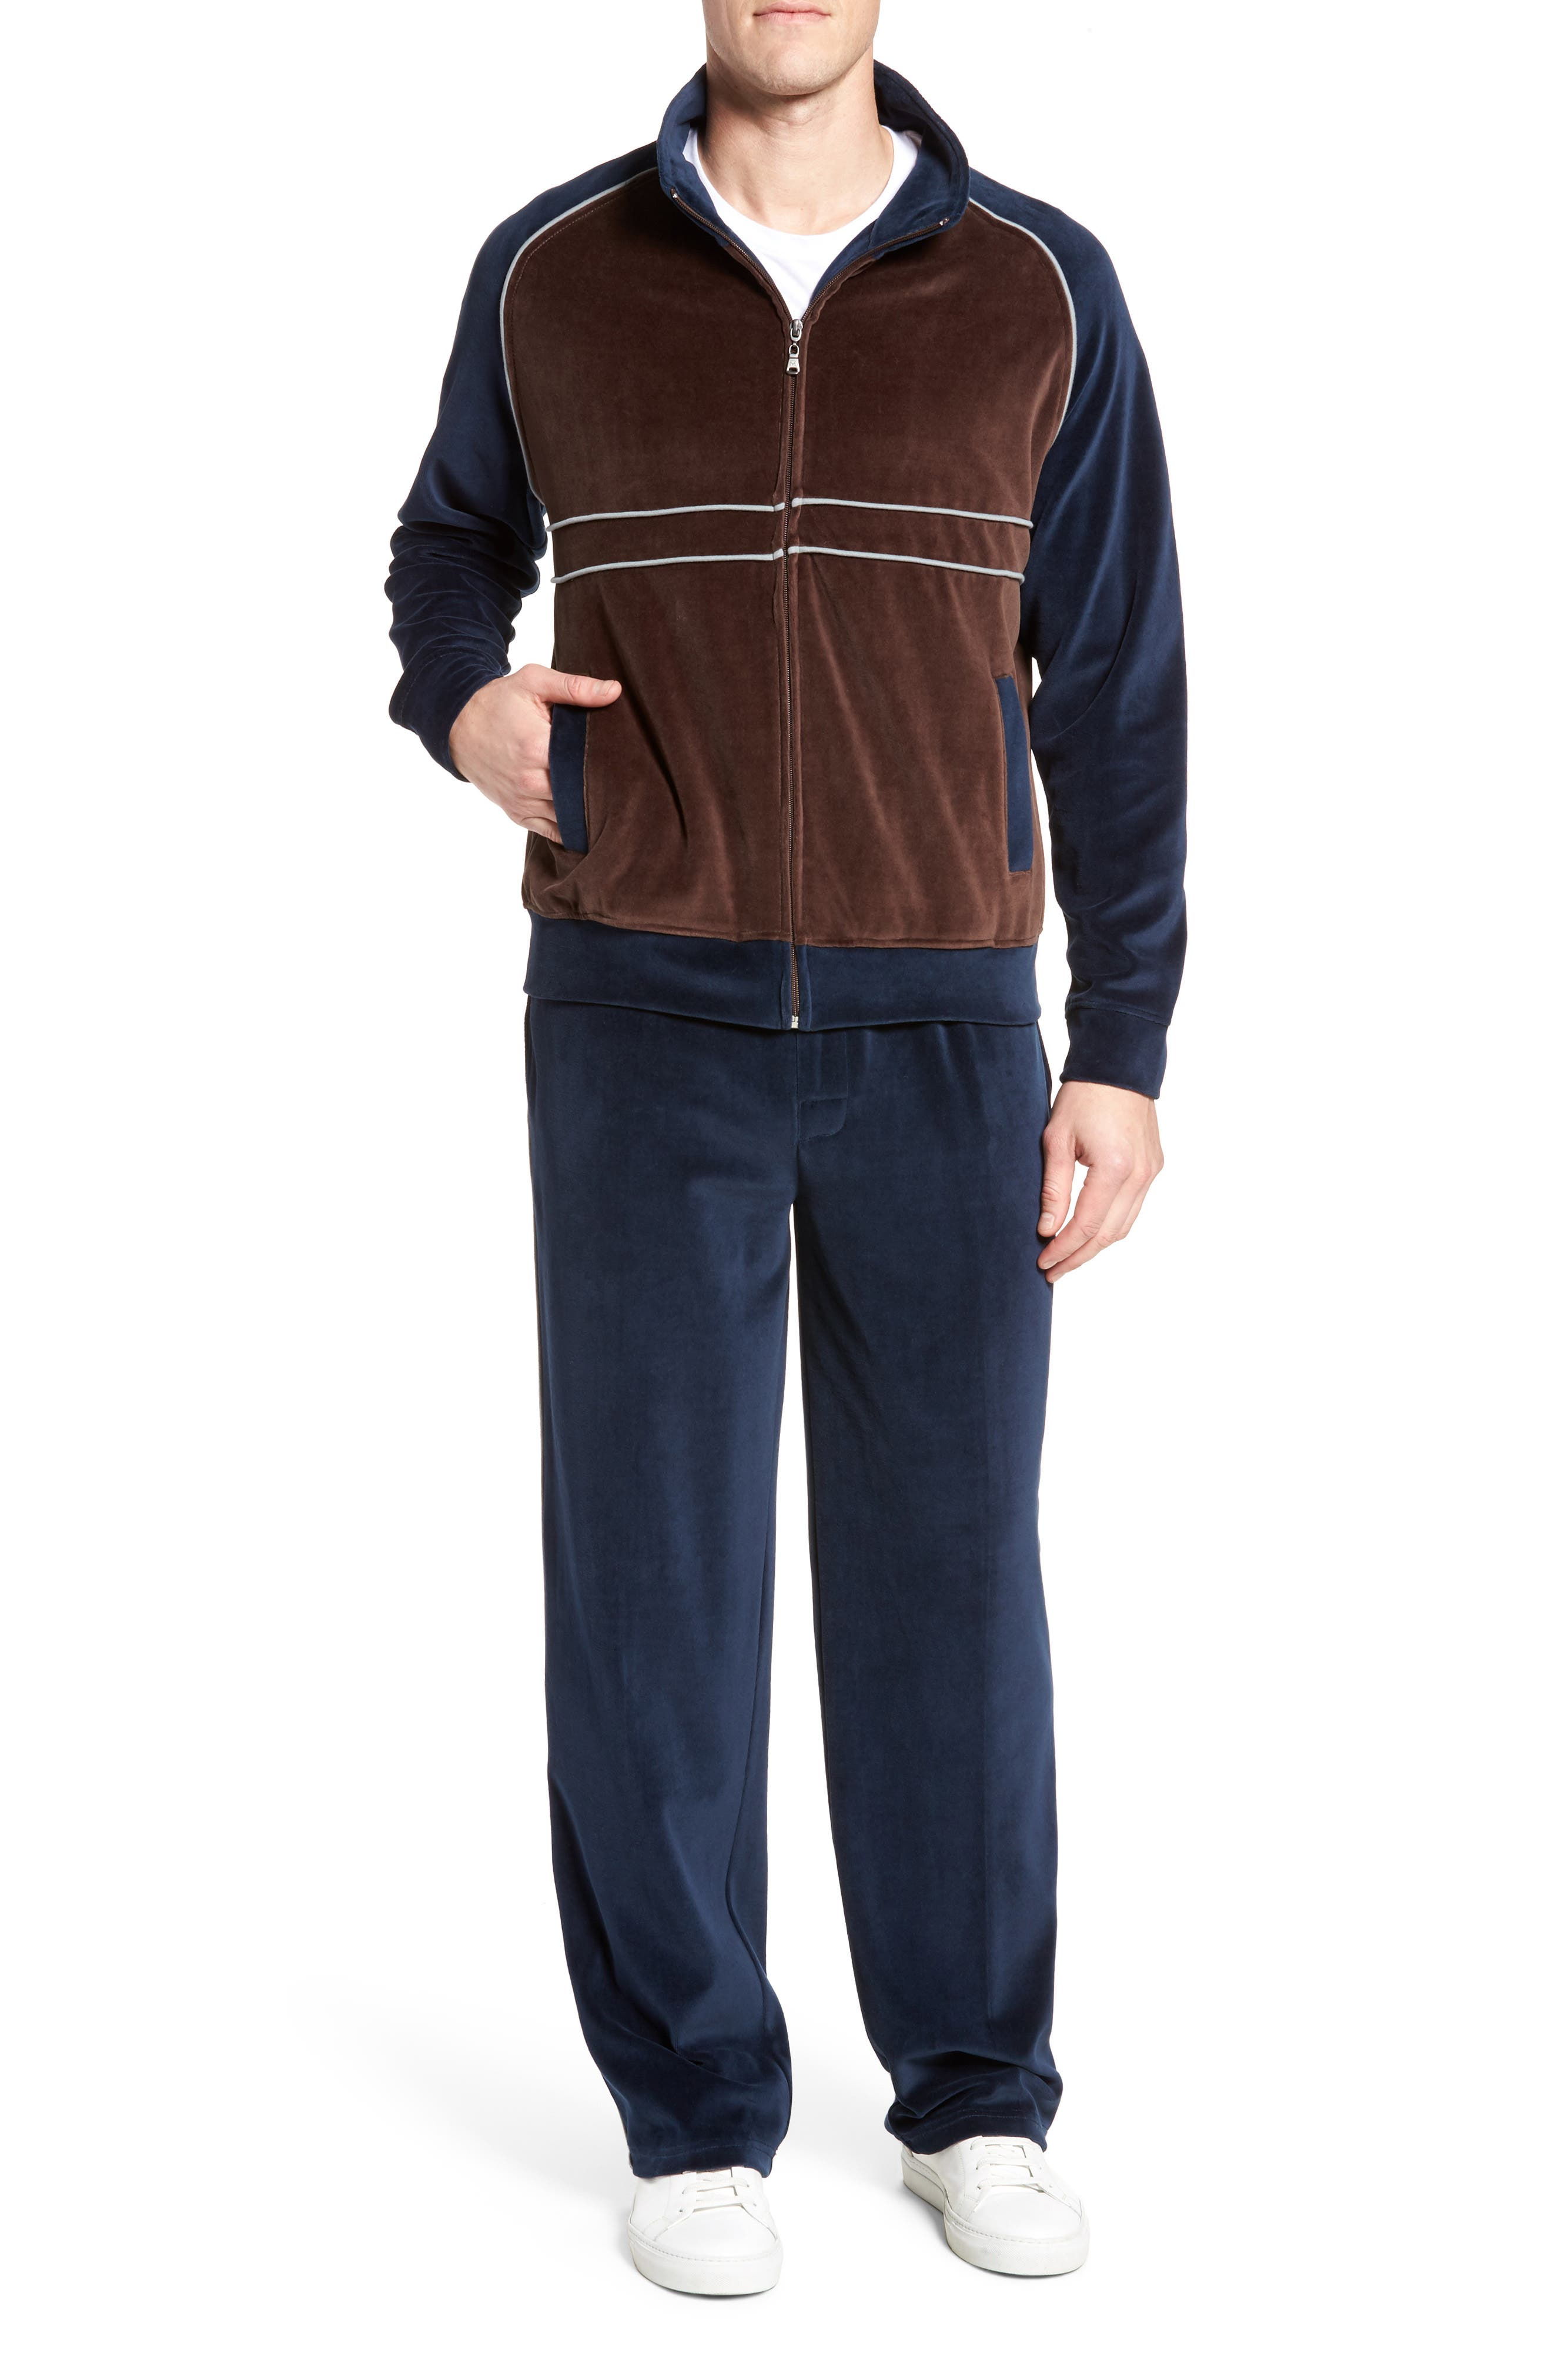 Strathcona Velour Warm-Up Suit,                         Main,                         color, 410